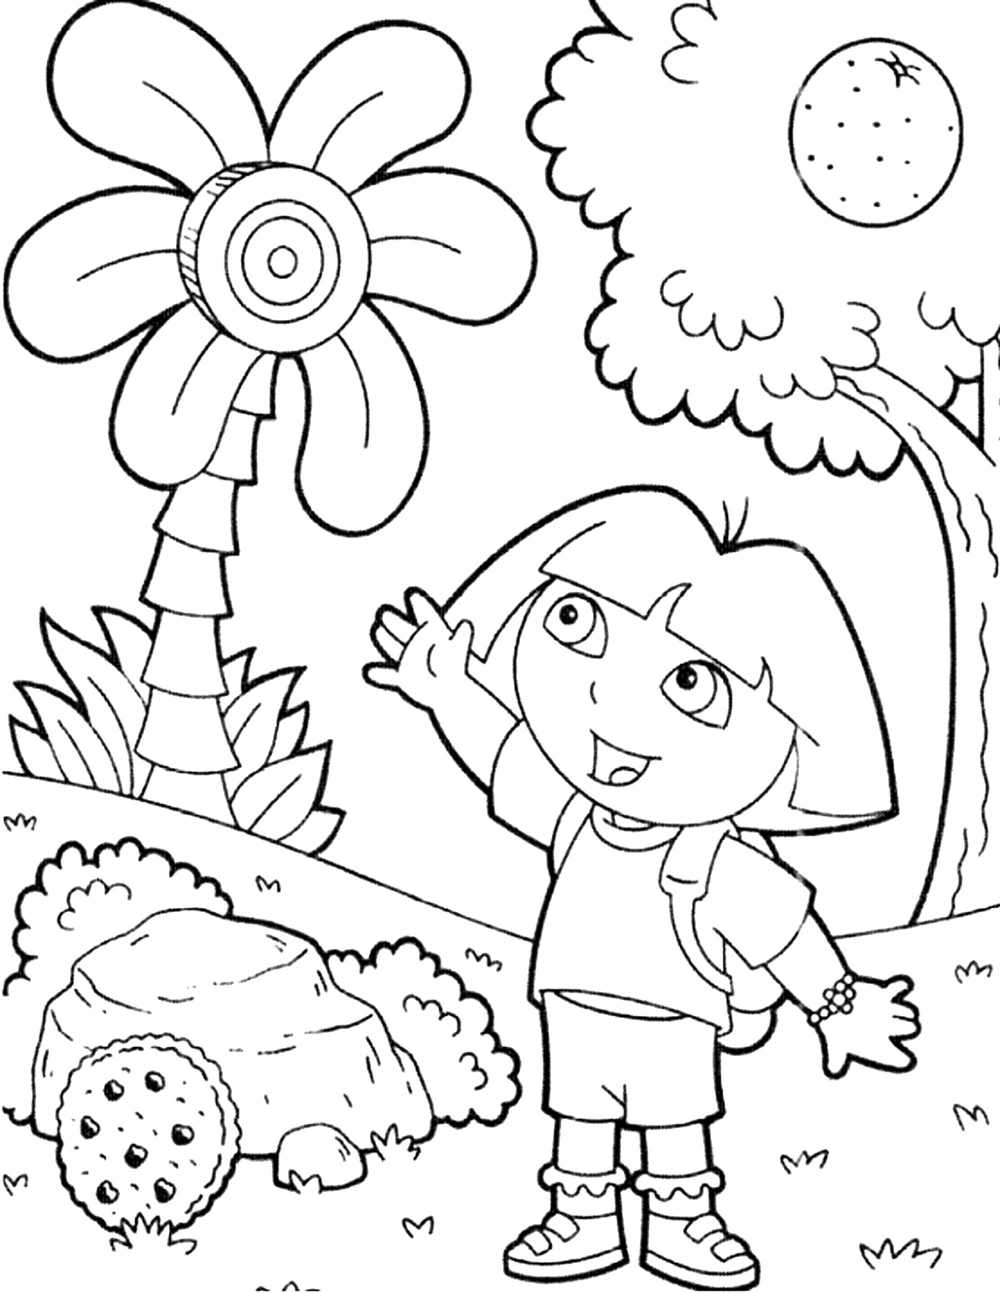 coloring pages of dora free printable dora coloring pages for kids cool2bkids pages coloring dora of